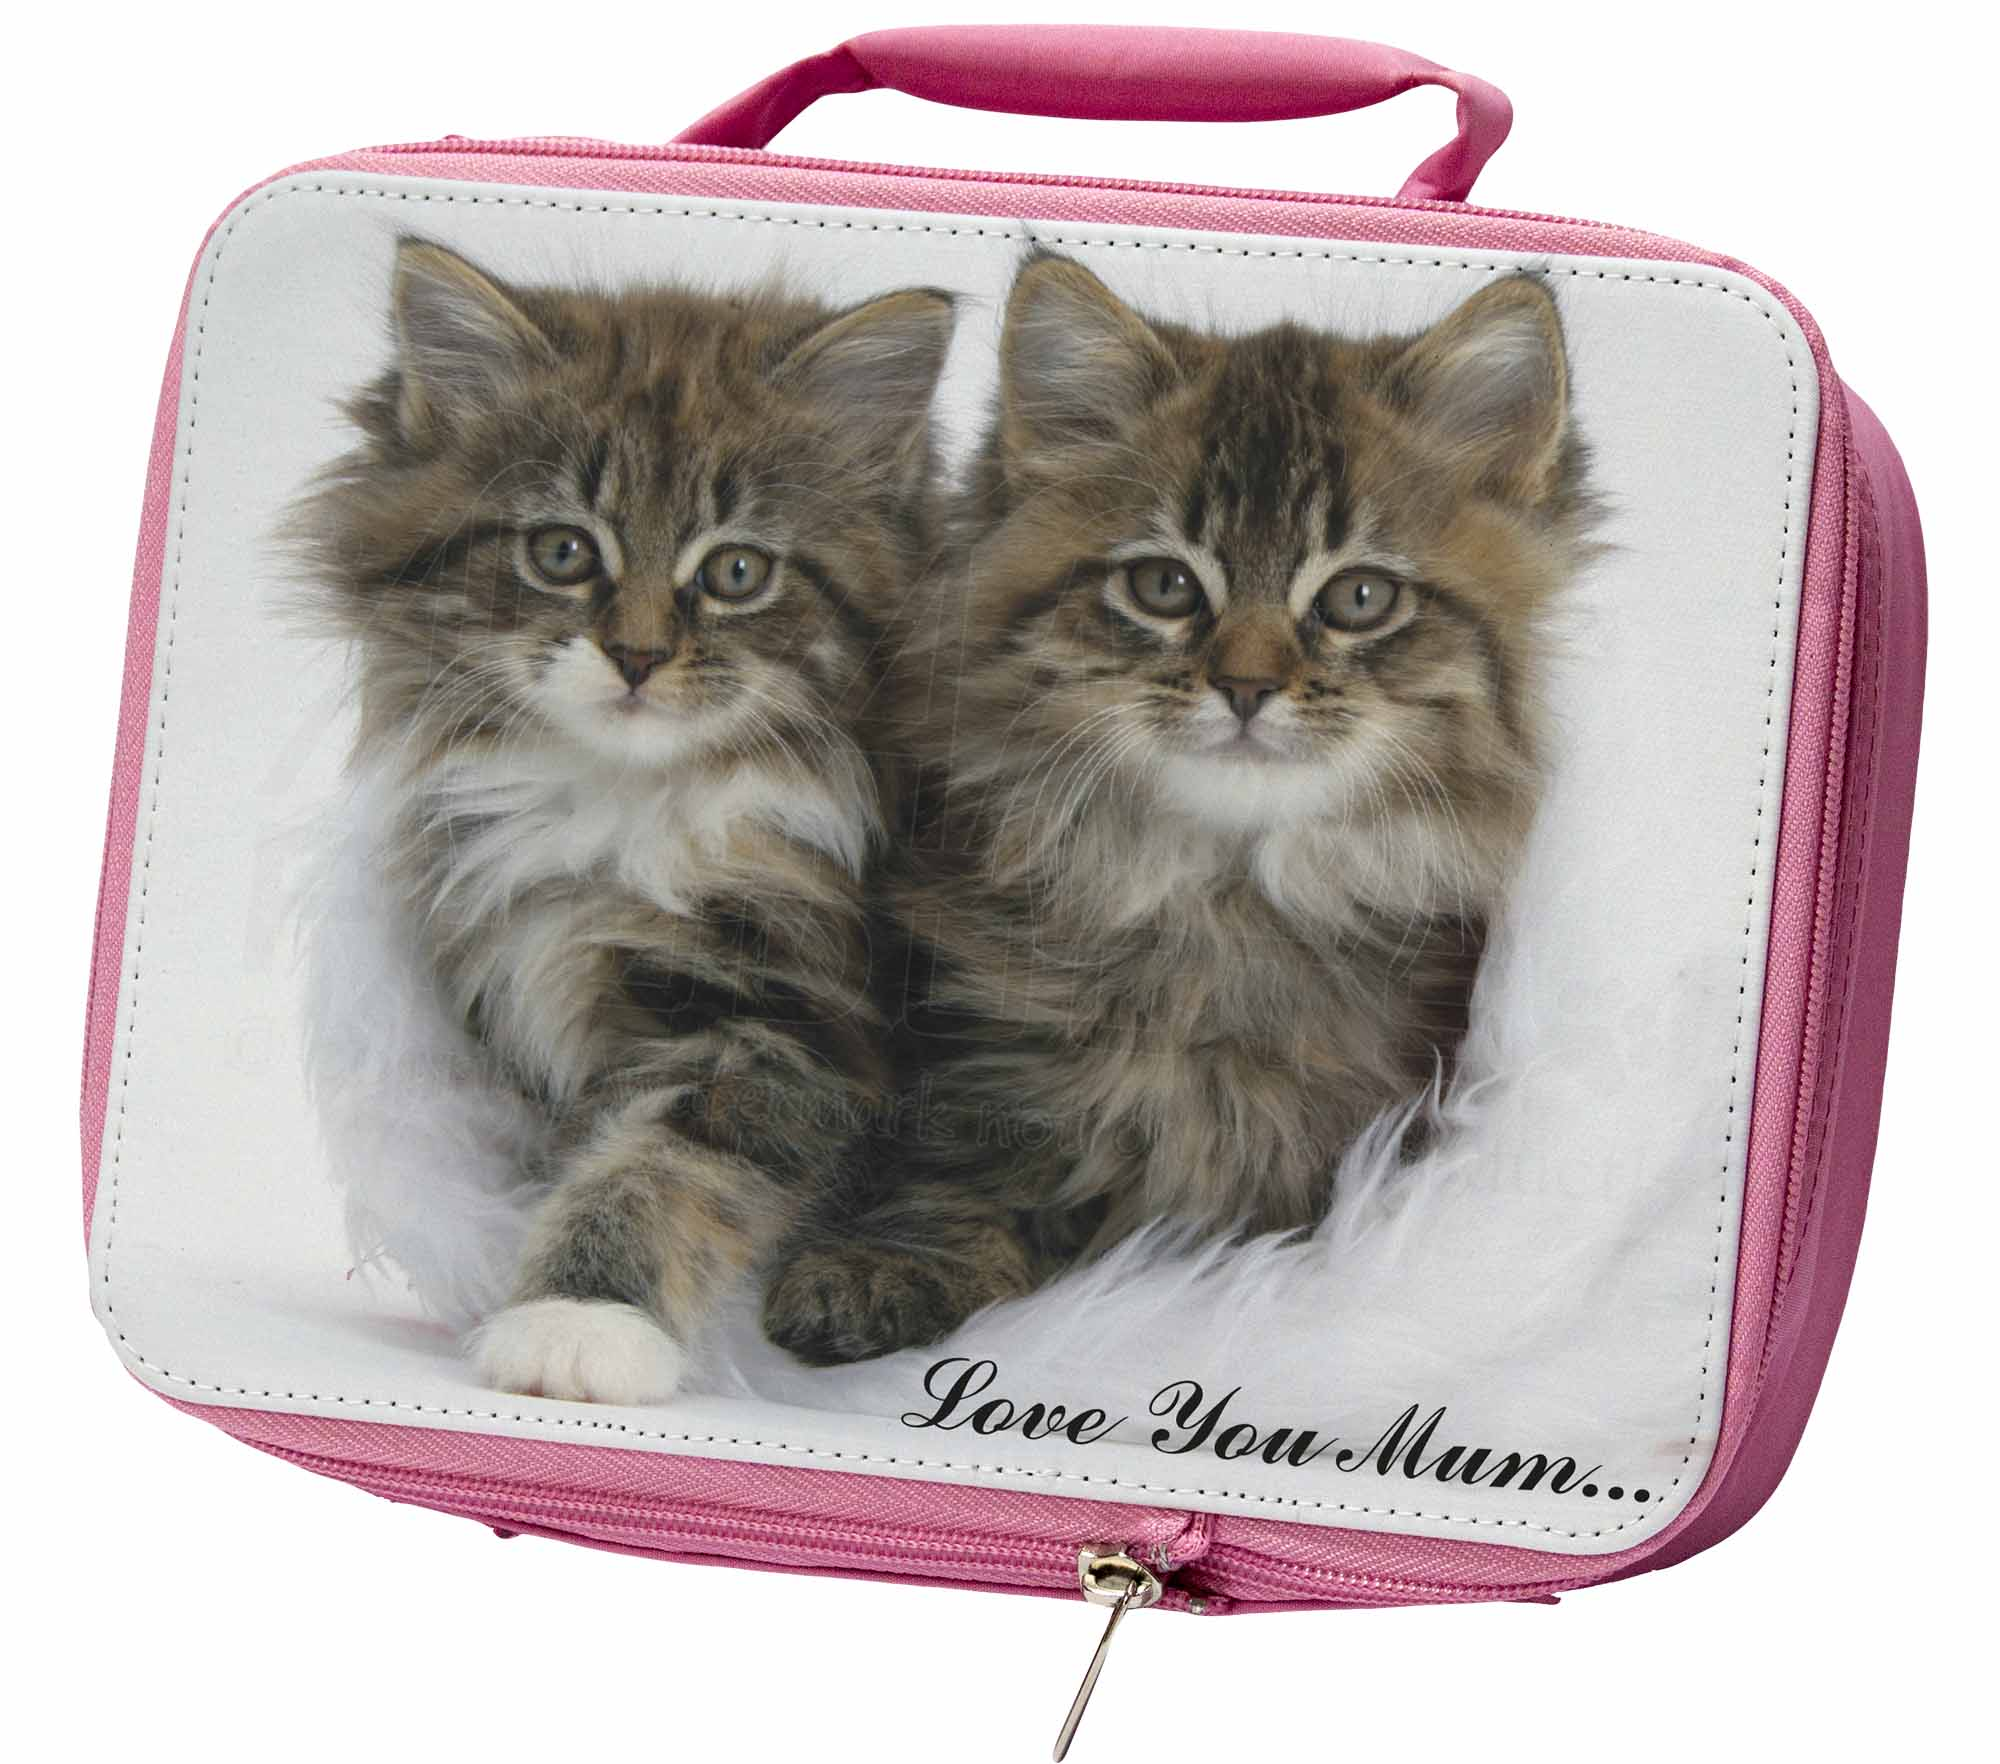 'Love You Mum' Mothers Day Cats Insulated Pink School Lunch Box Ba, AC189lymLBP